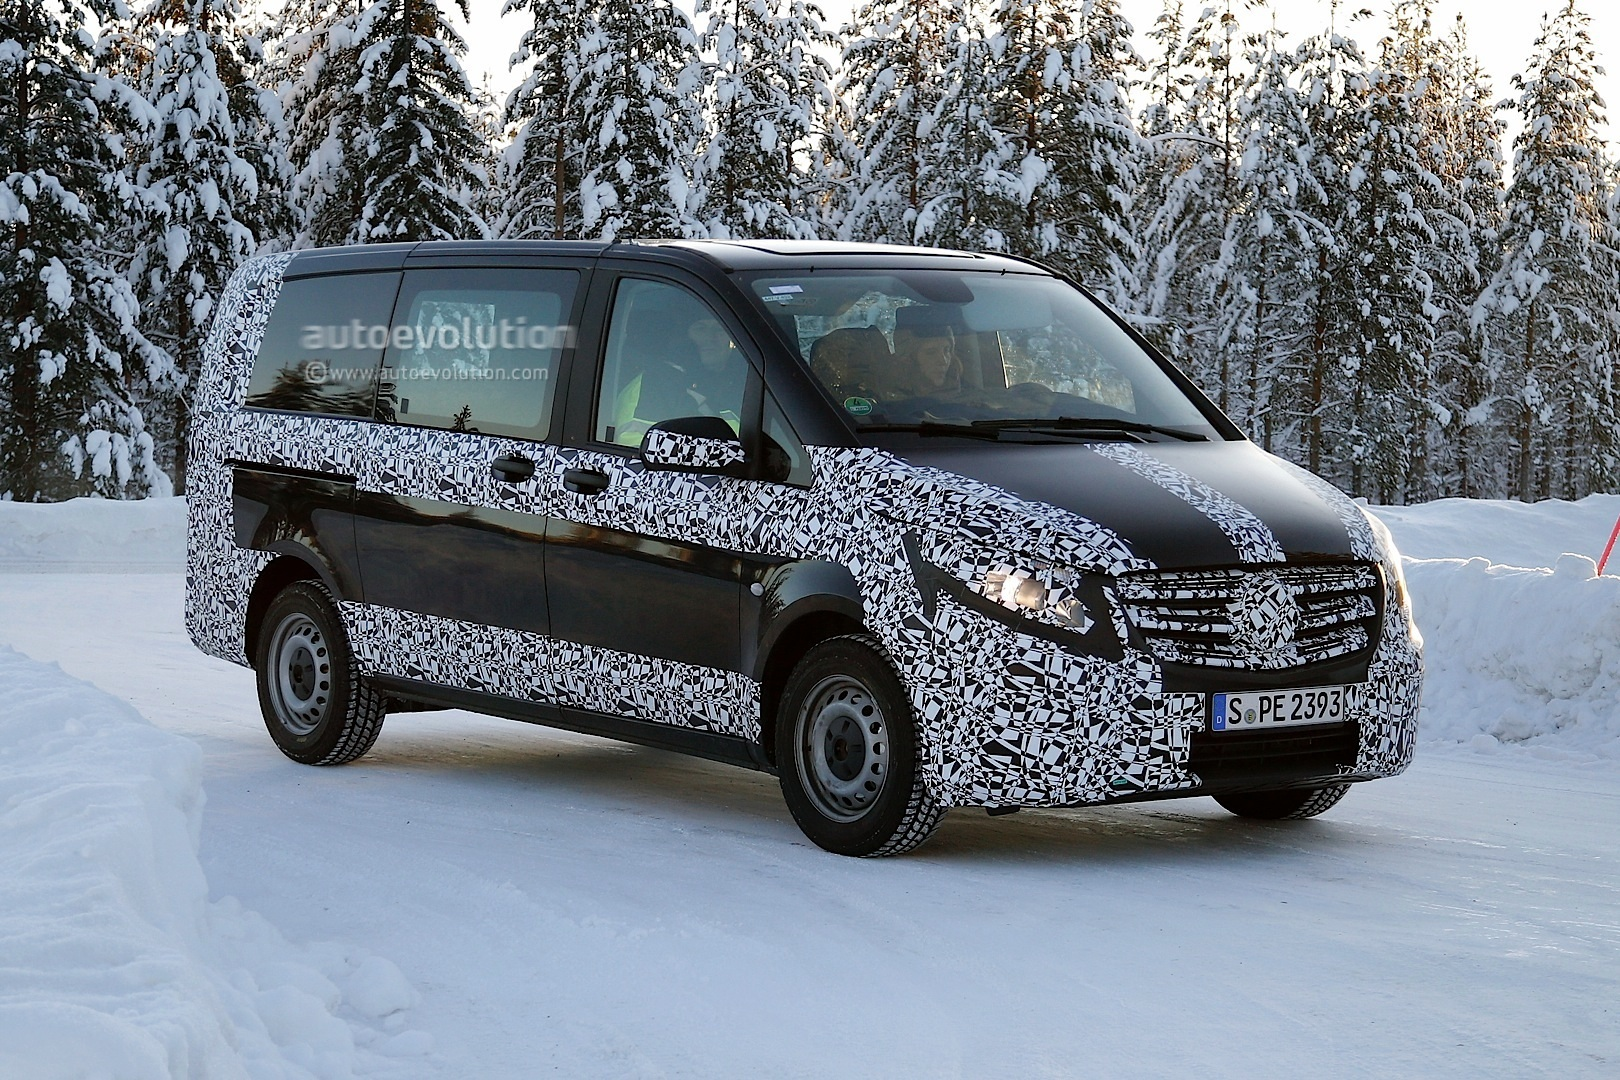 2014 - [Mercedes] Classe V/Vito - Page 5 2015-mercedes-benz-v-class-spied-winter-testing-photo-gallery_2